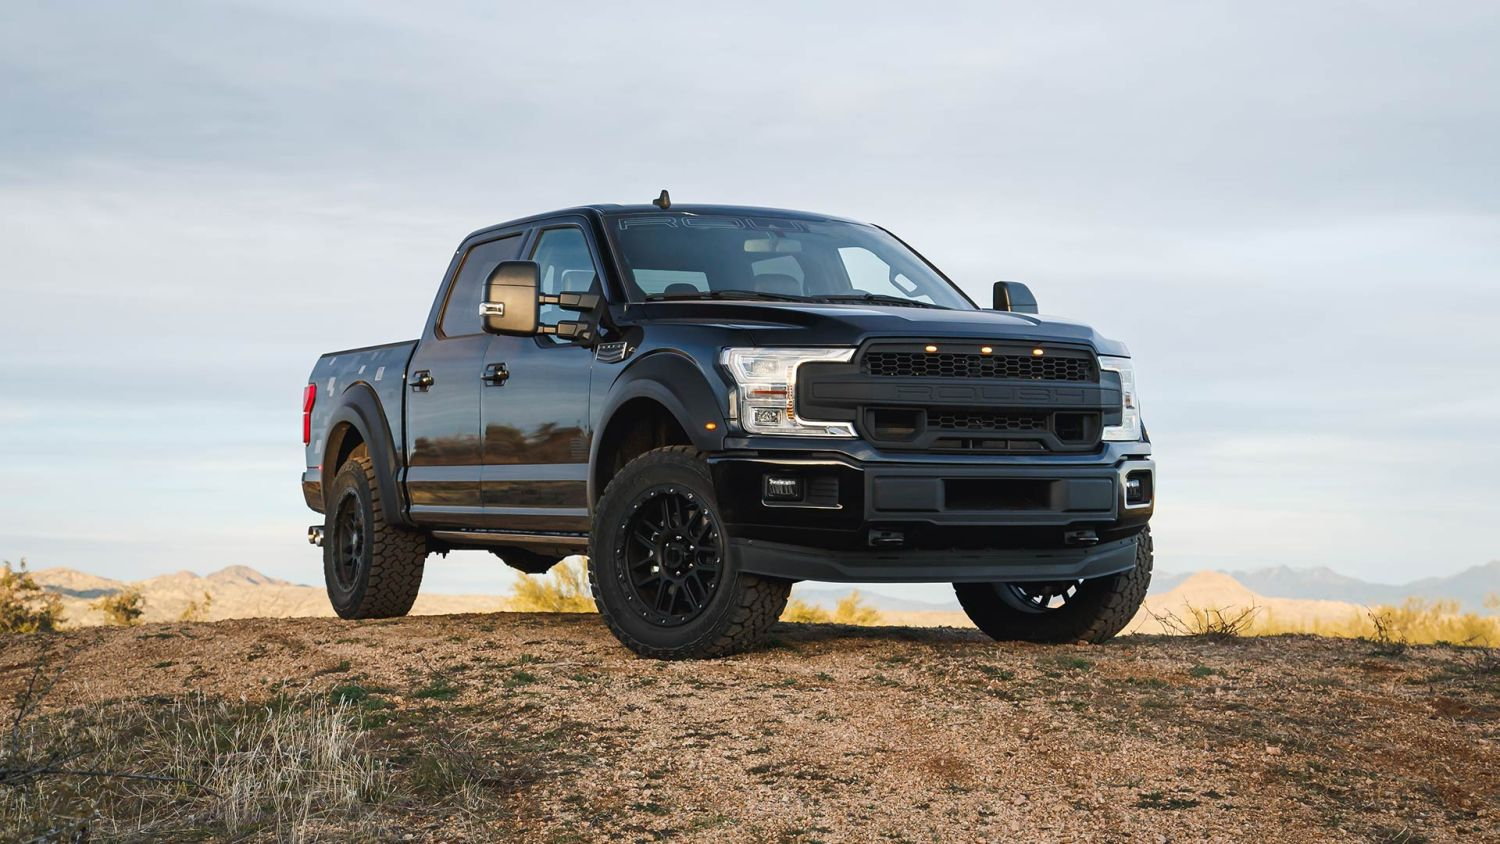 Roush F-150 5.11 Tactical Edition is a 650 hp truck ready for anything